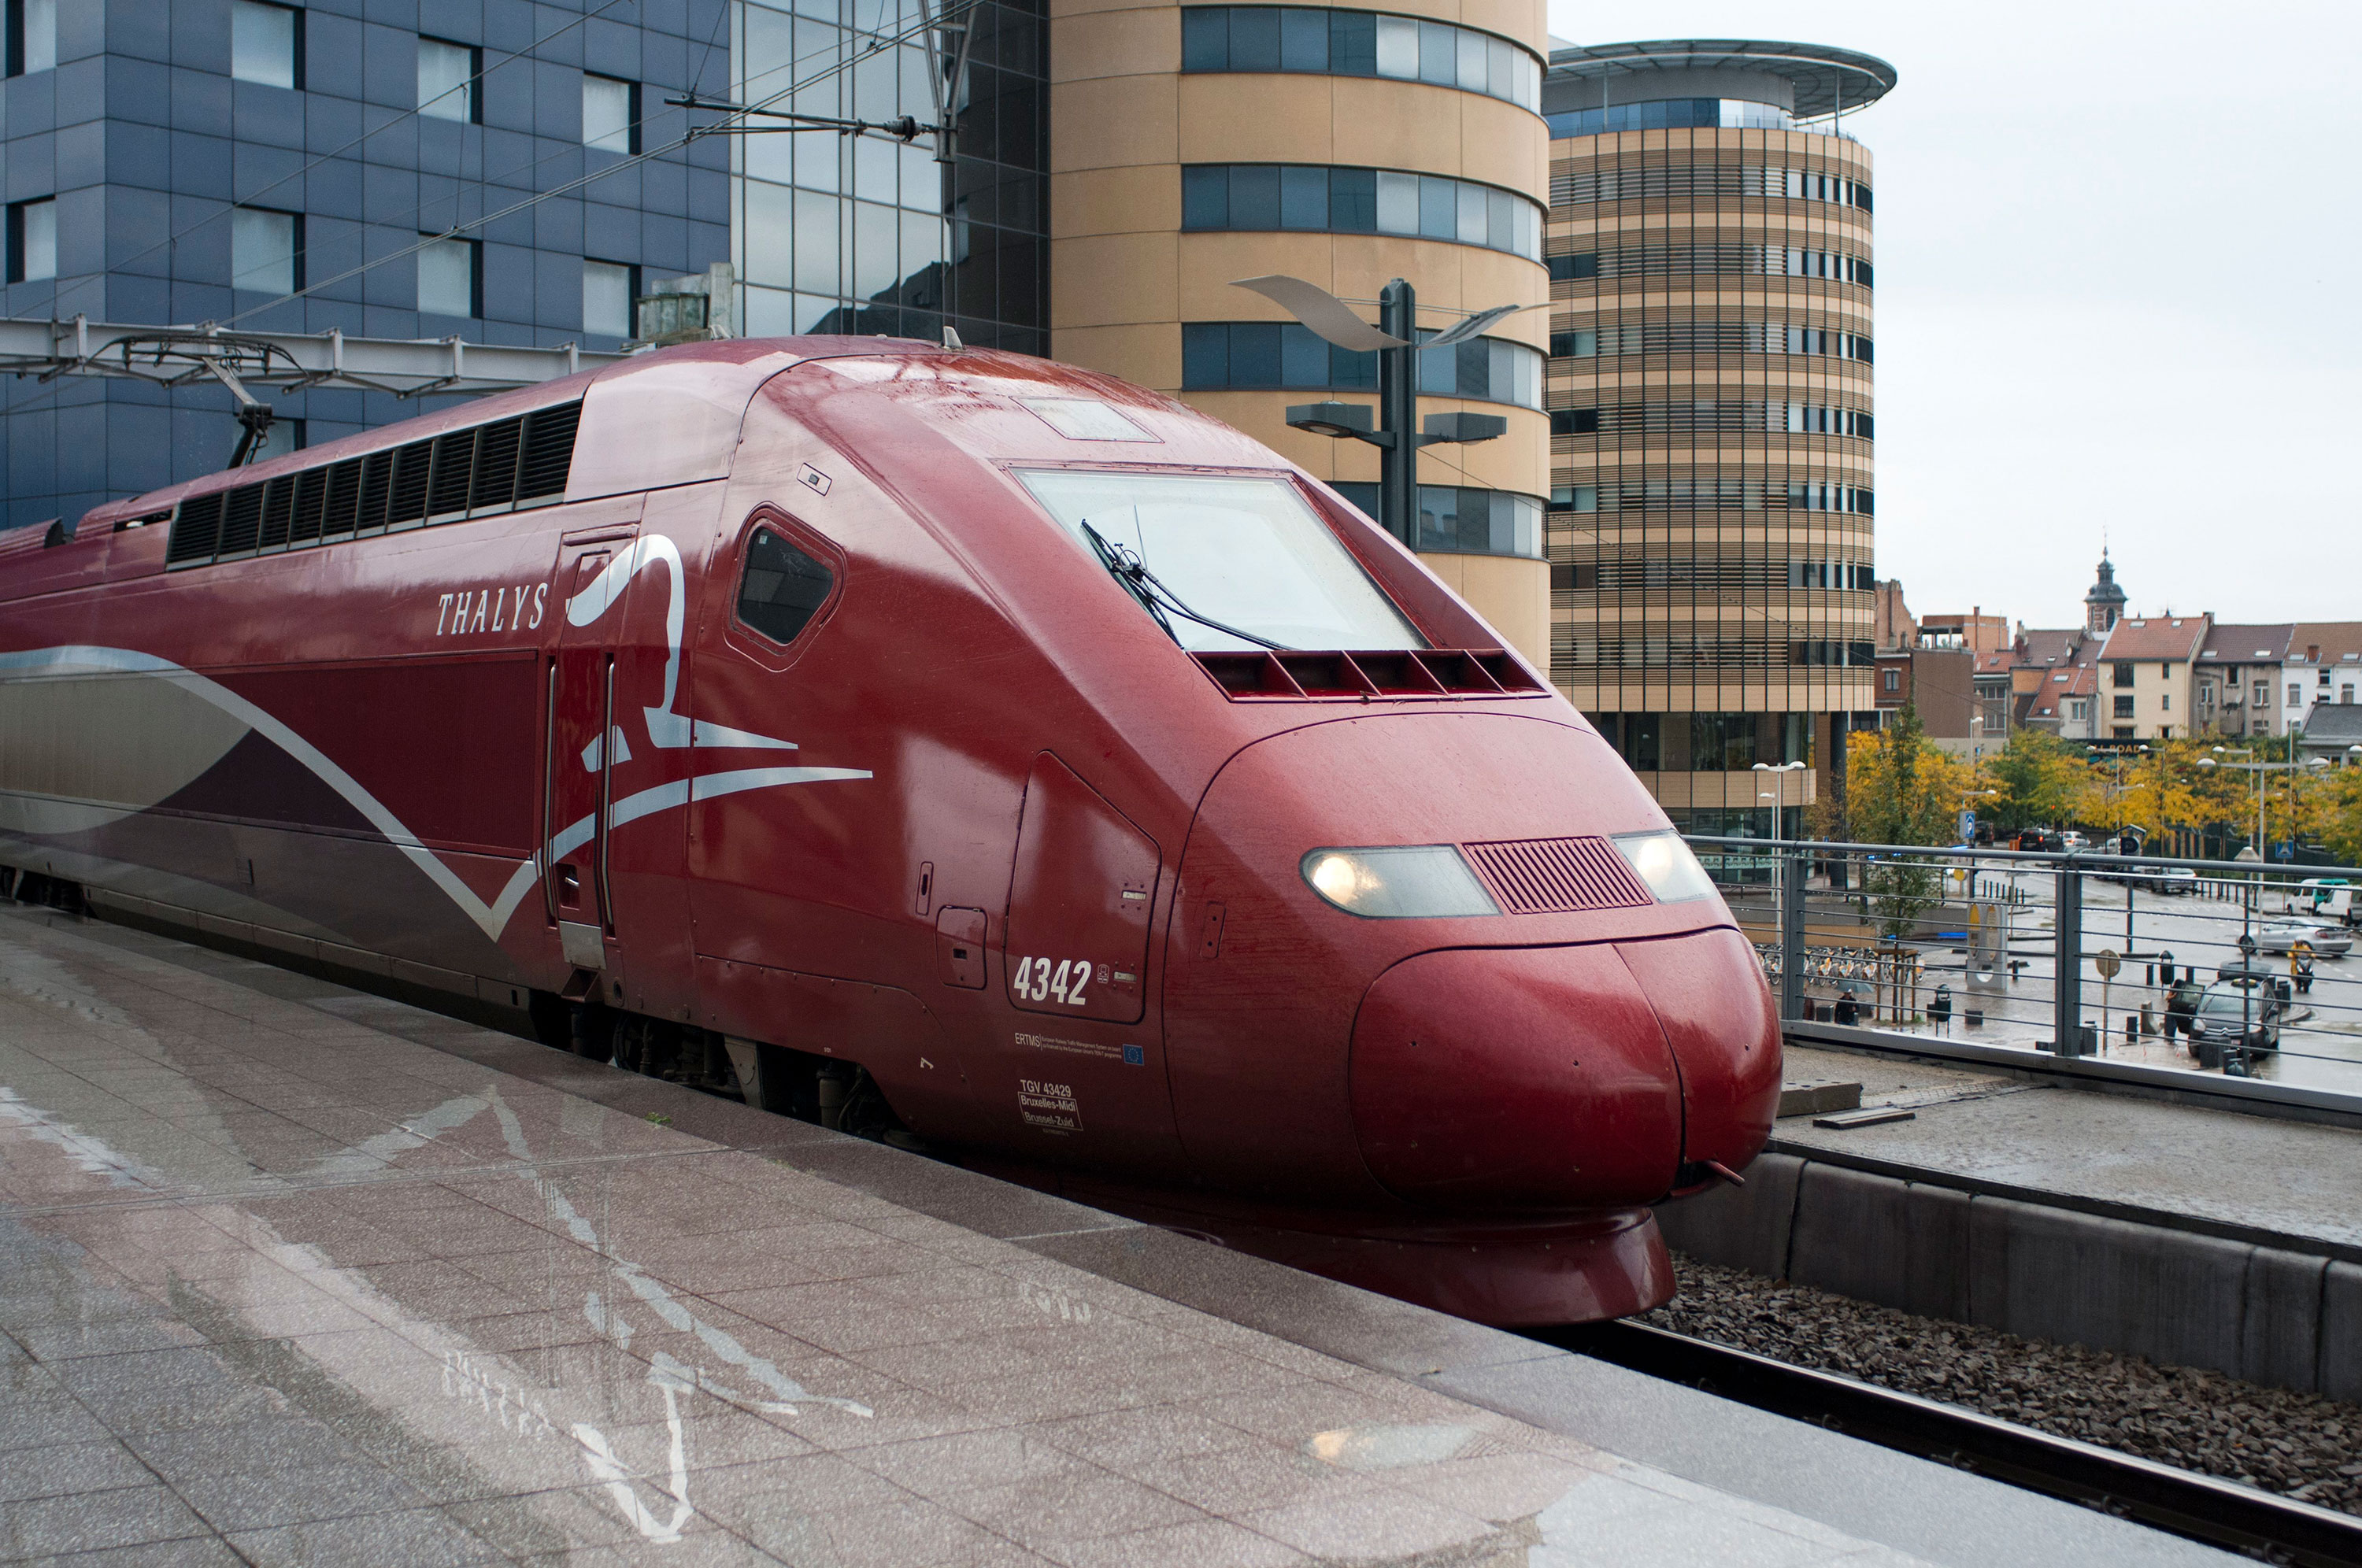 A Thalys high speed train in Belgium in 2018